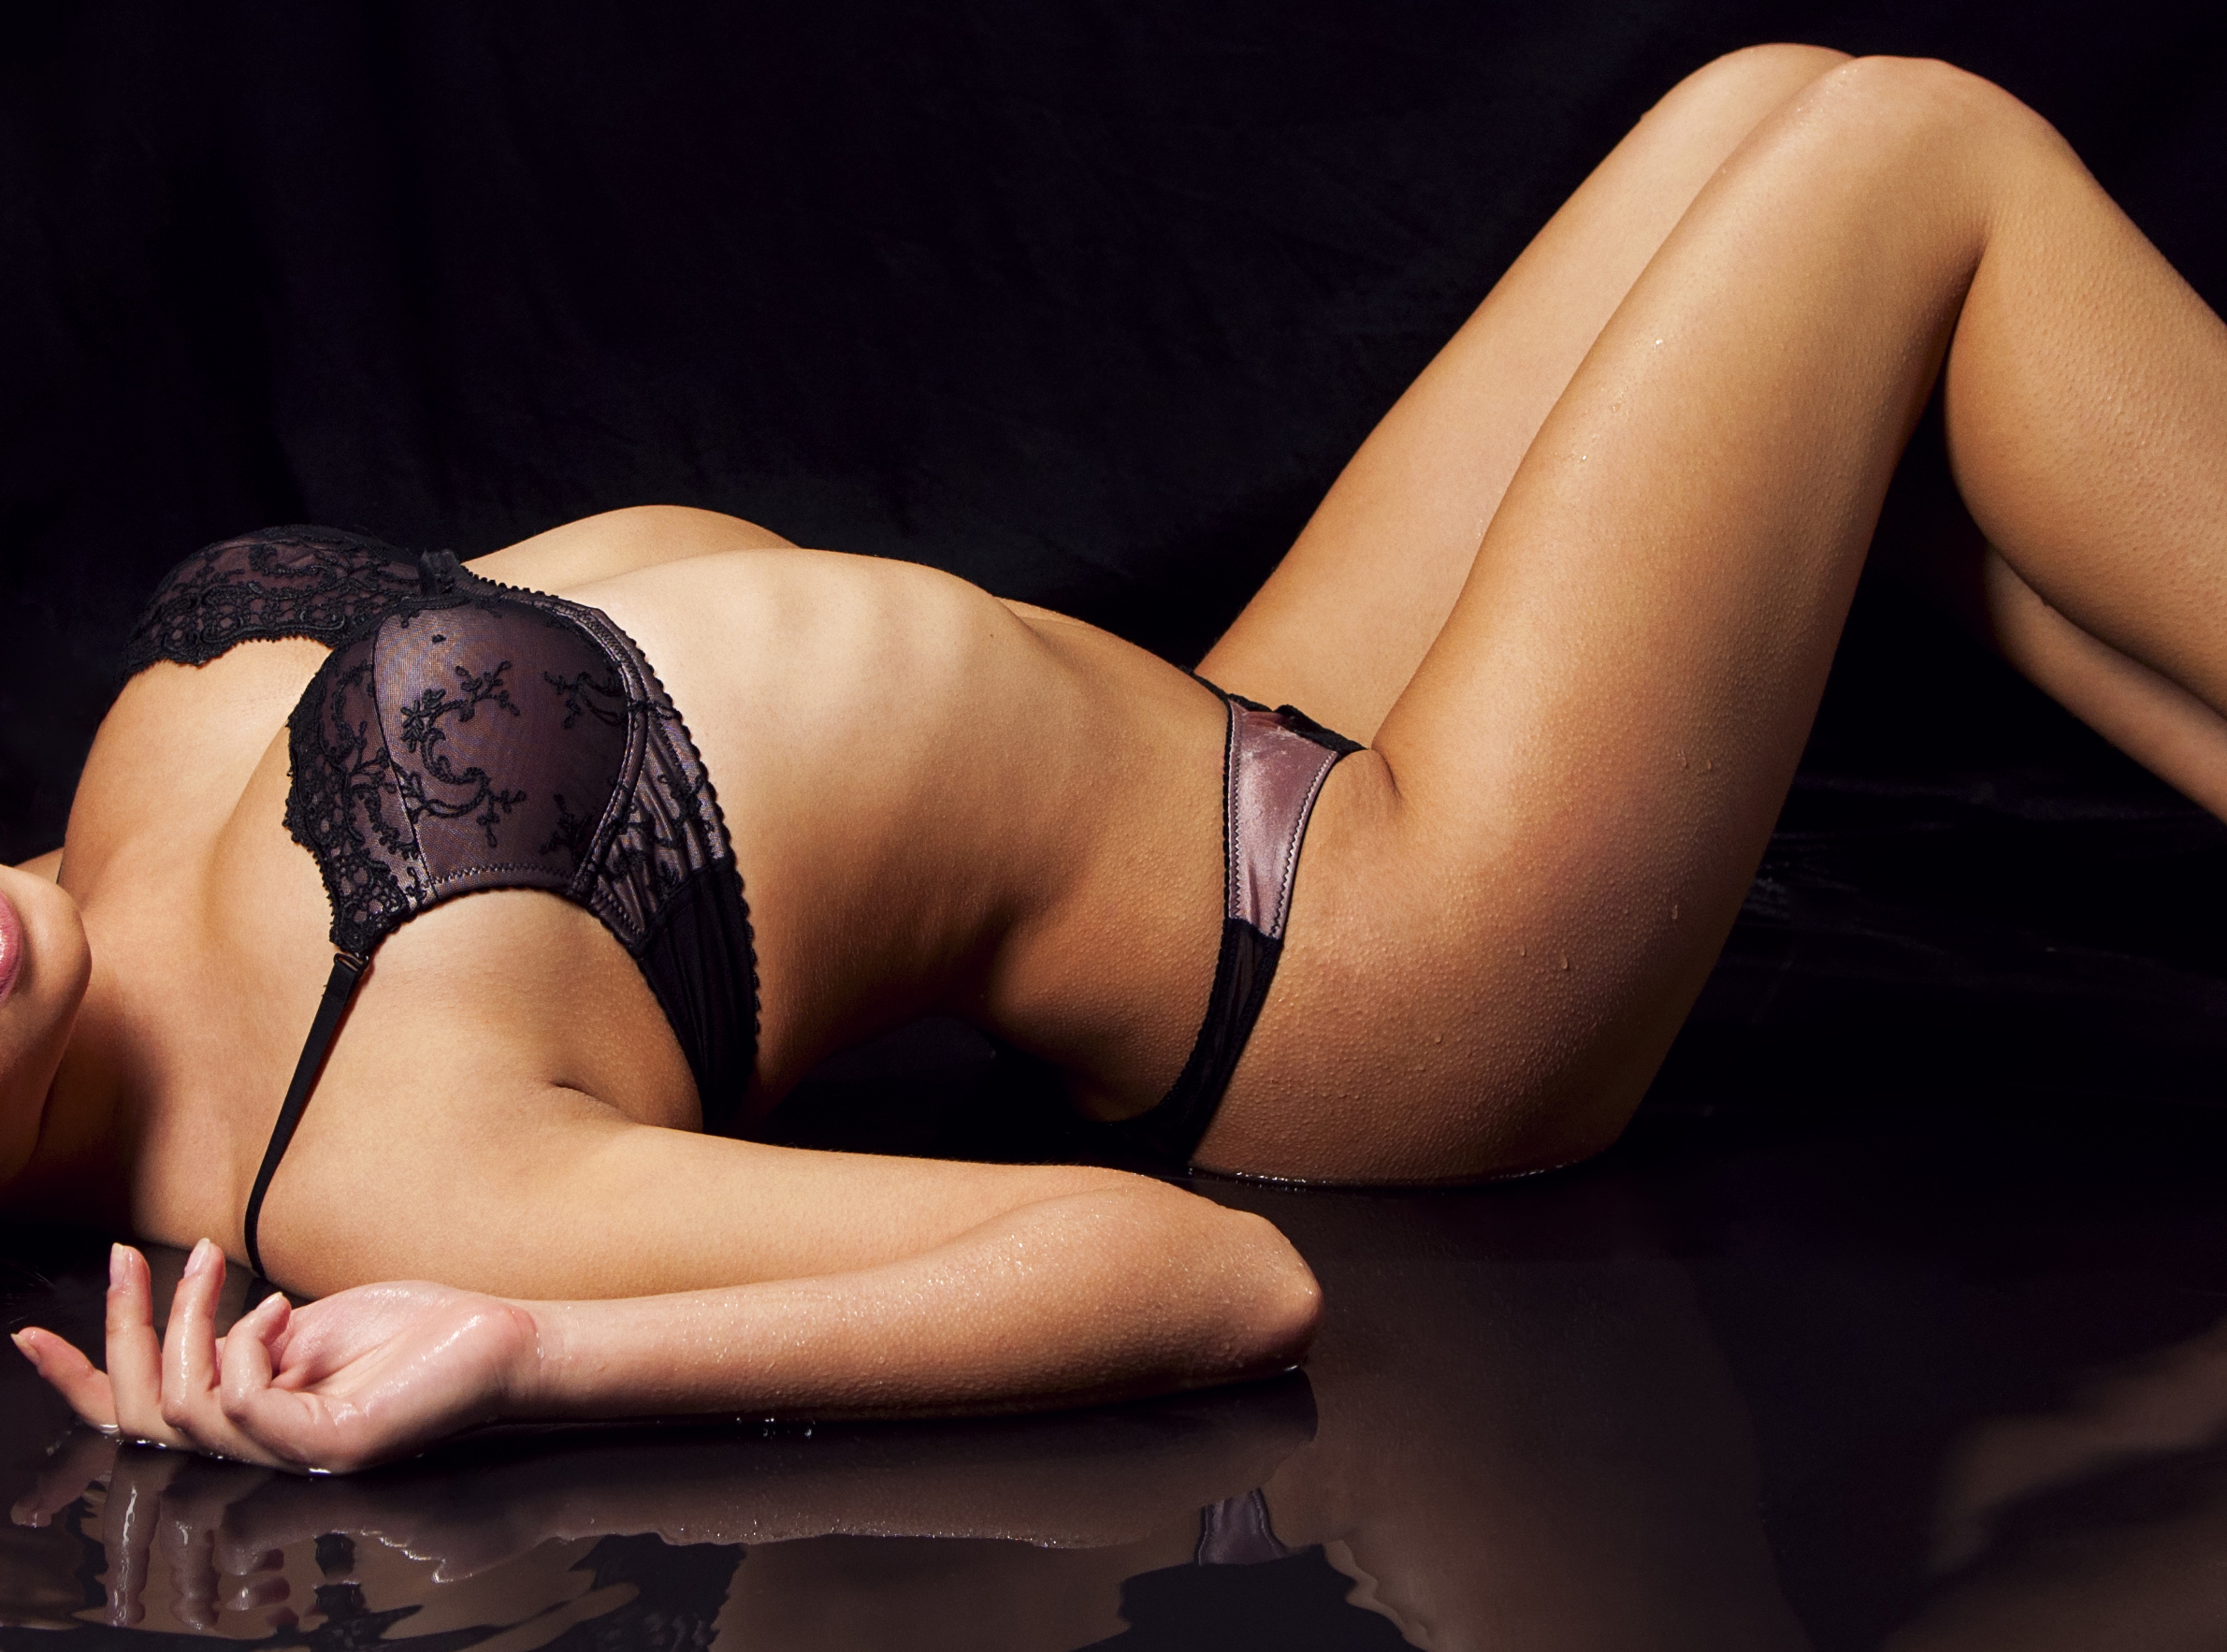 massage parlour cairns brothels newcastle nsw